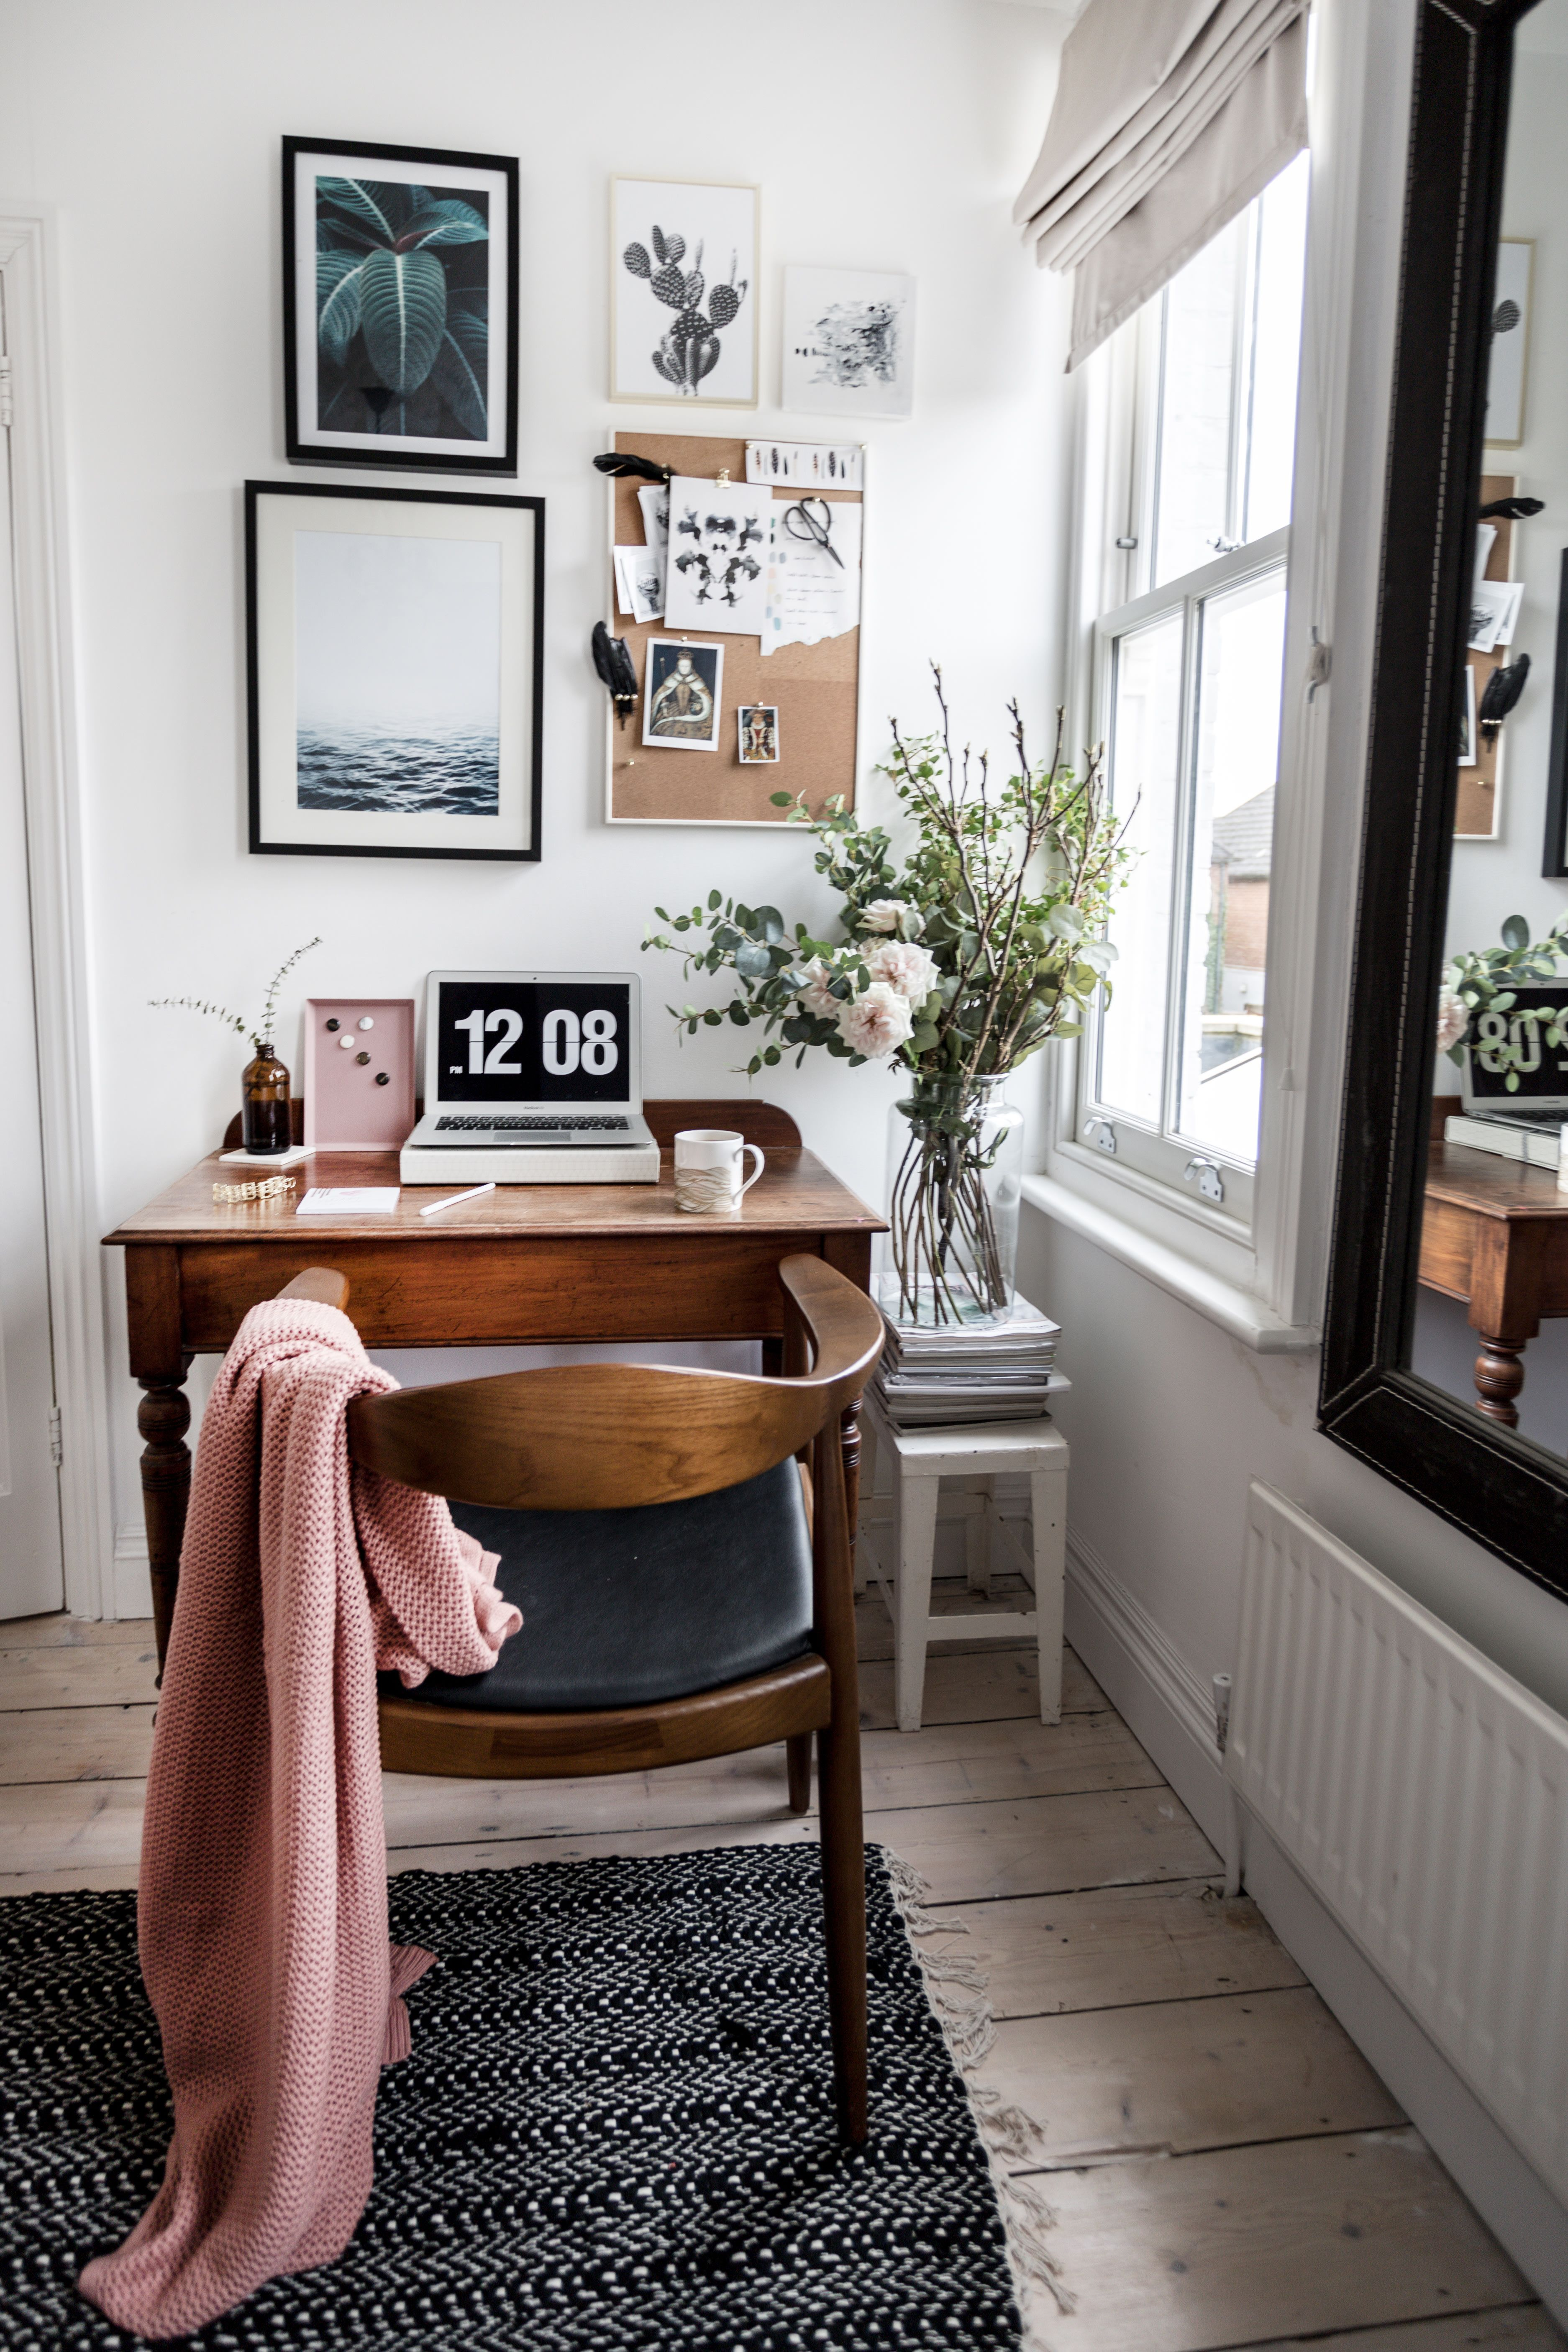 How To Make Your Home Feel Extra Cozy This Winter Courtesy Of A Home In Bath England Home House Interior Home Office Design